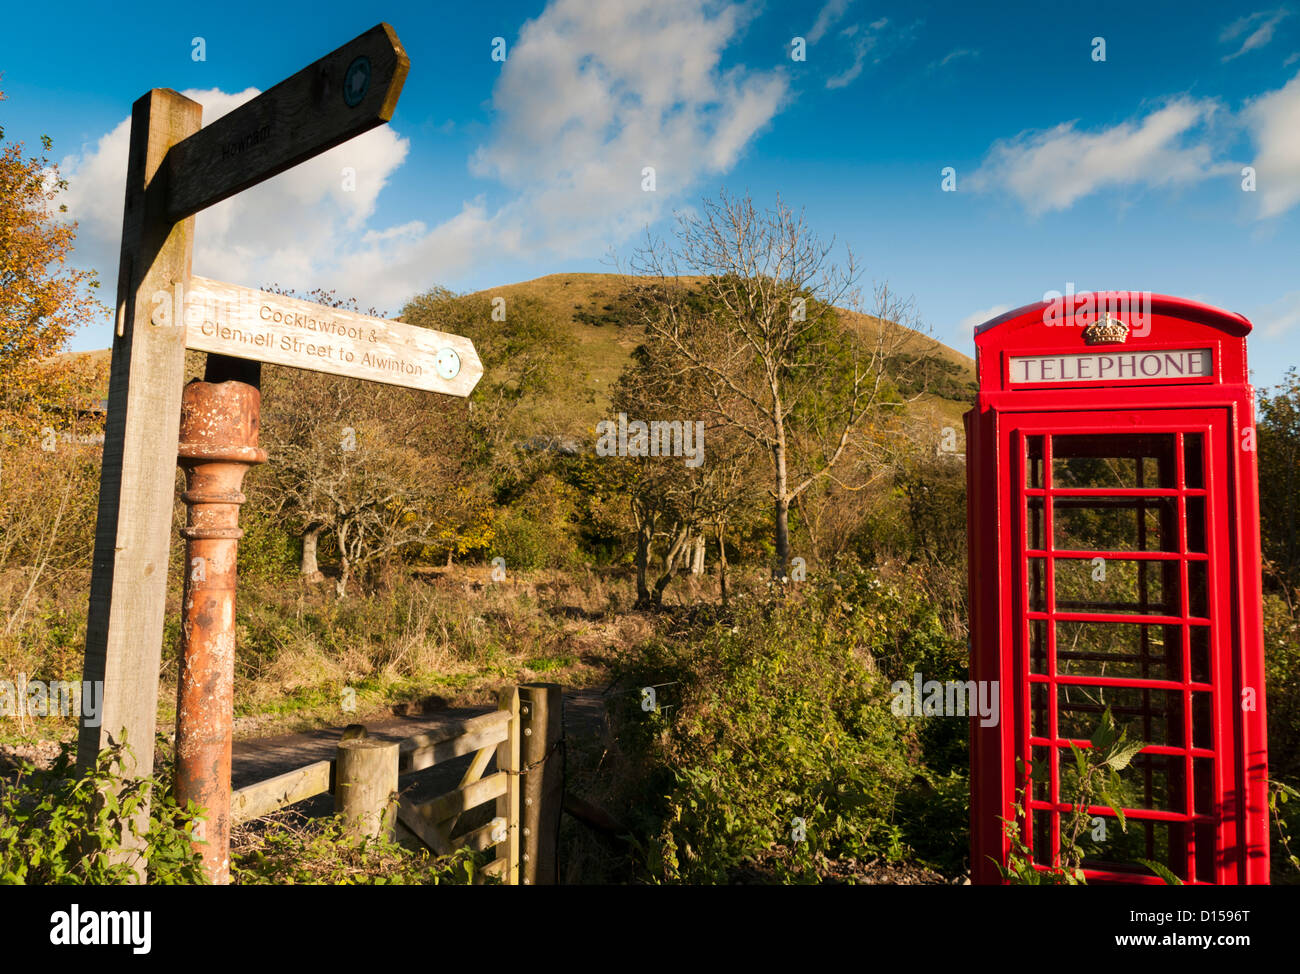 A remote British Red Telephone box - Stock Image